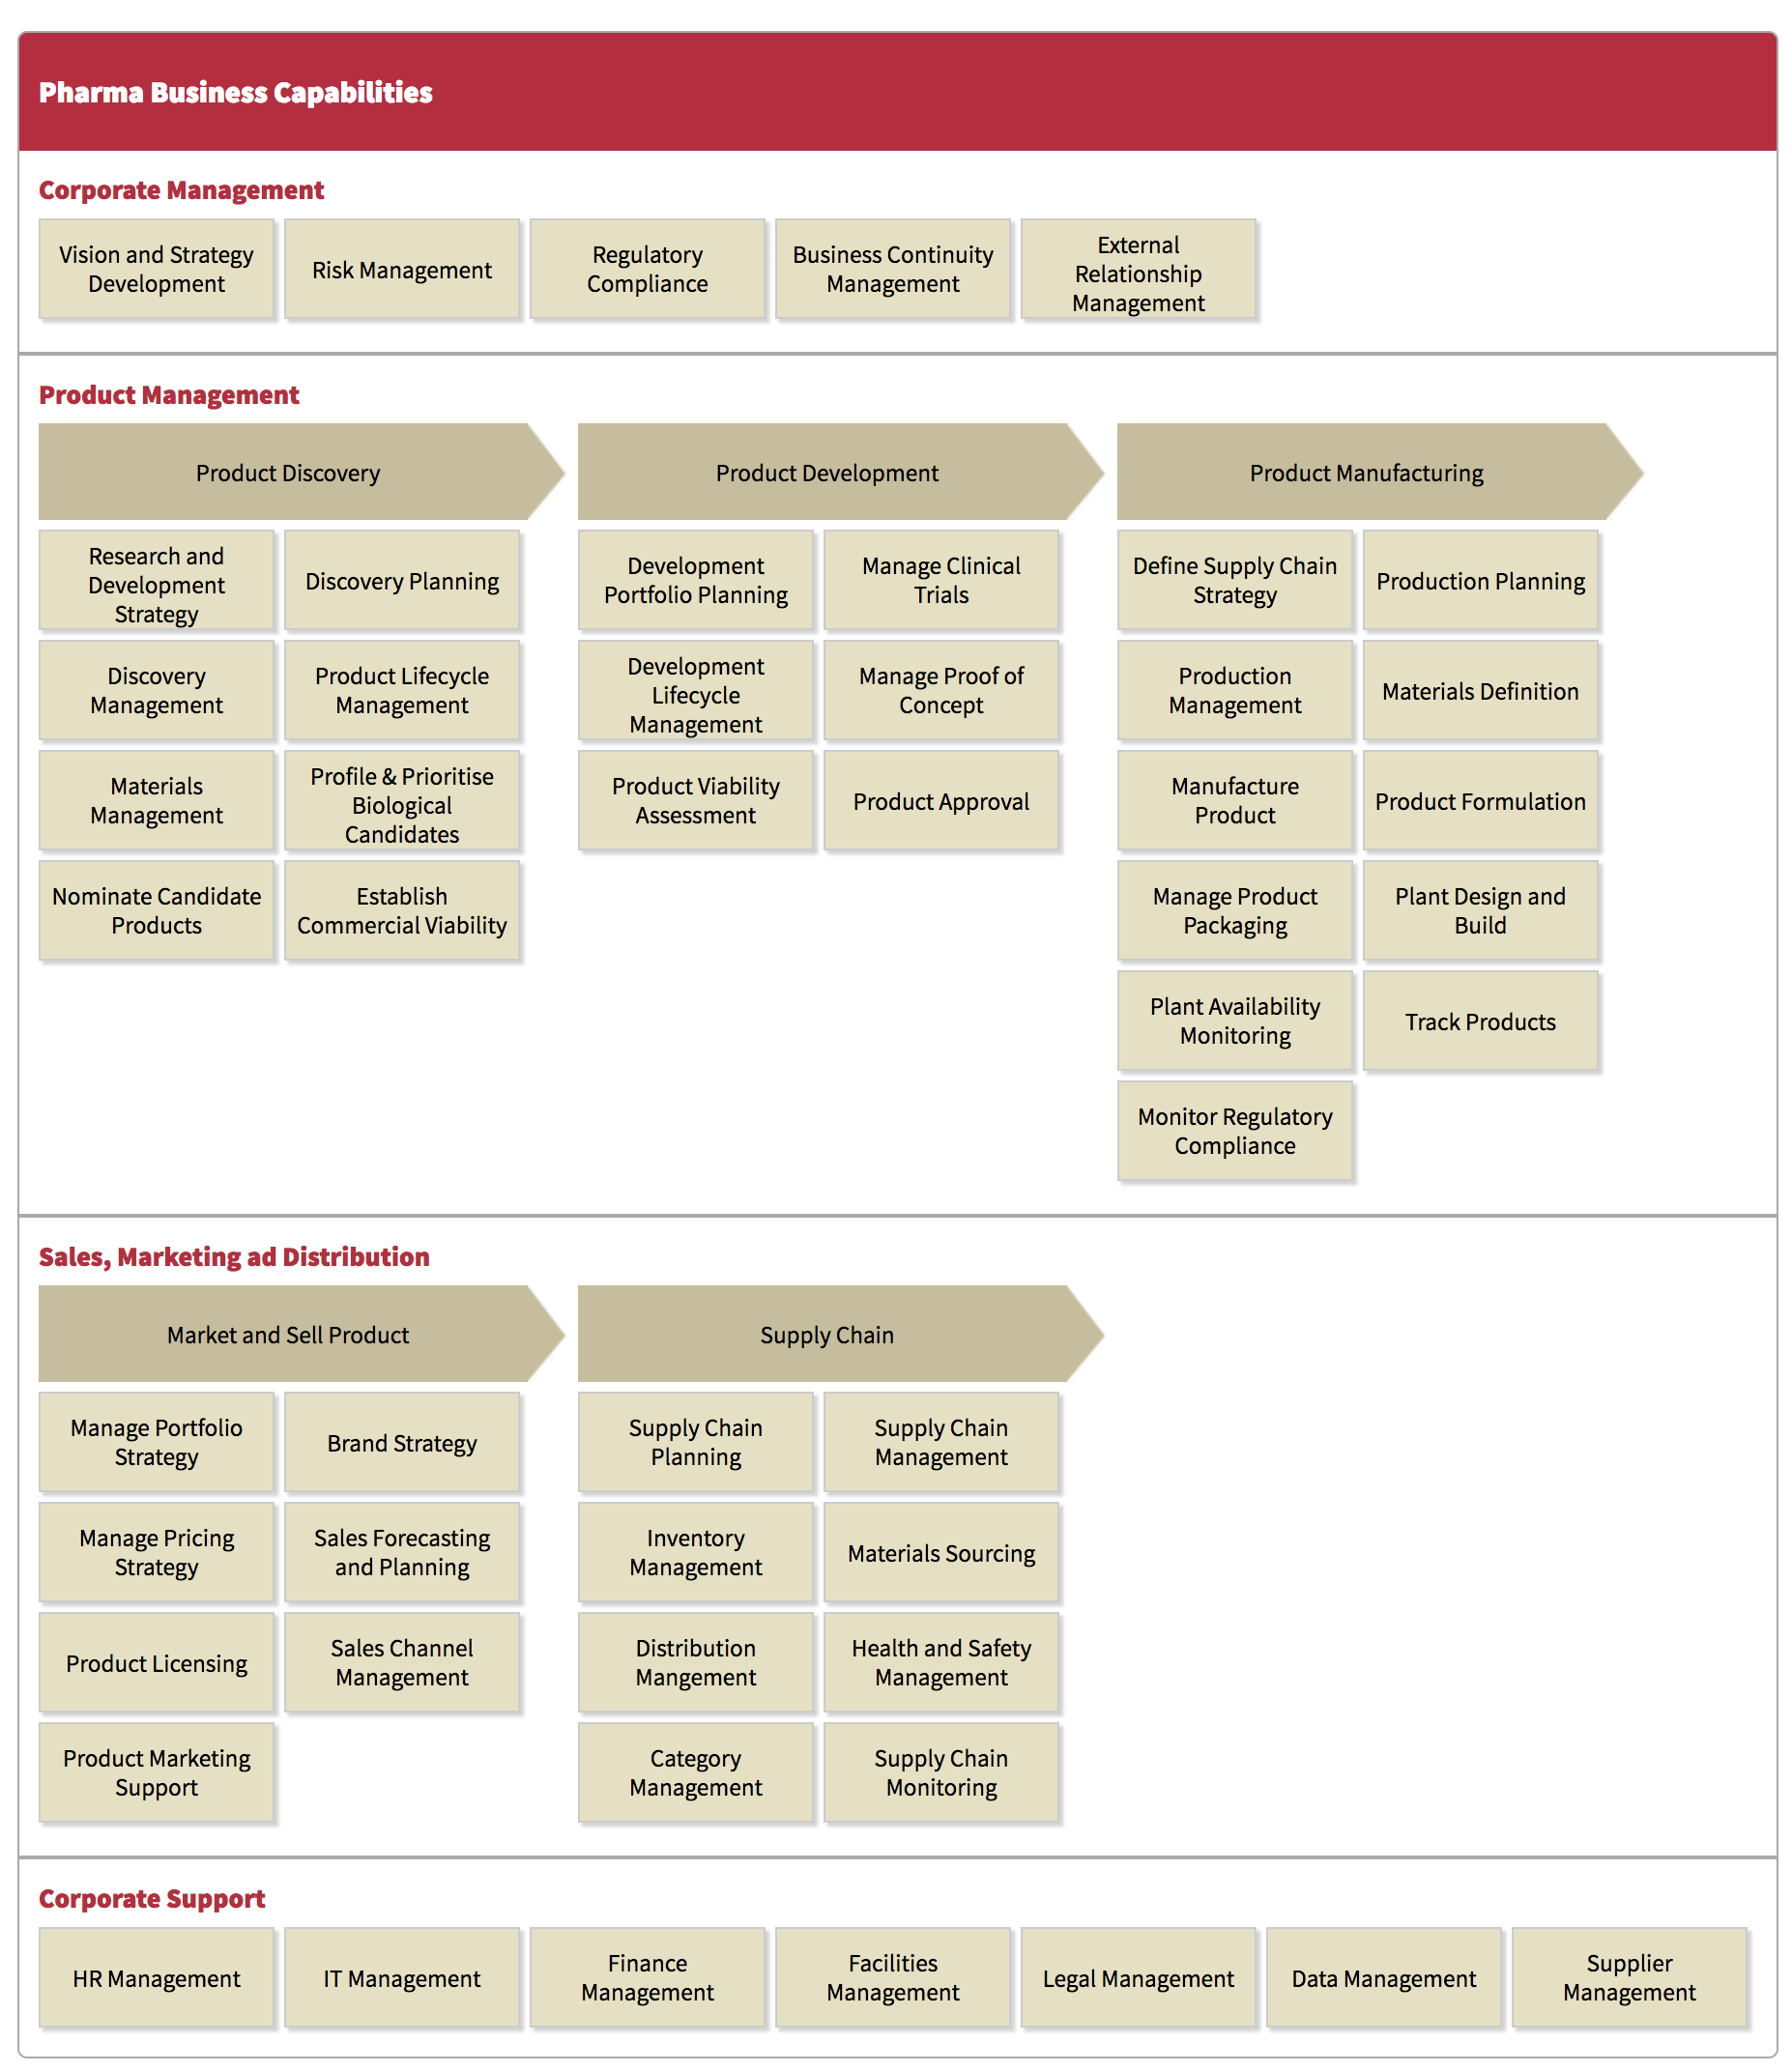 enterprise architecture pharma business capability model